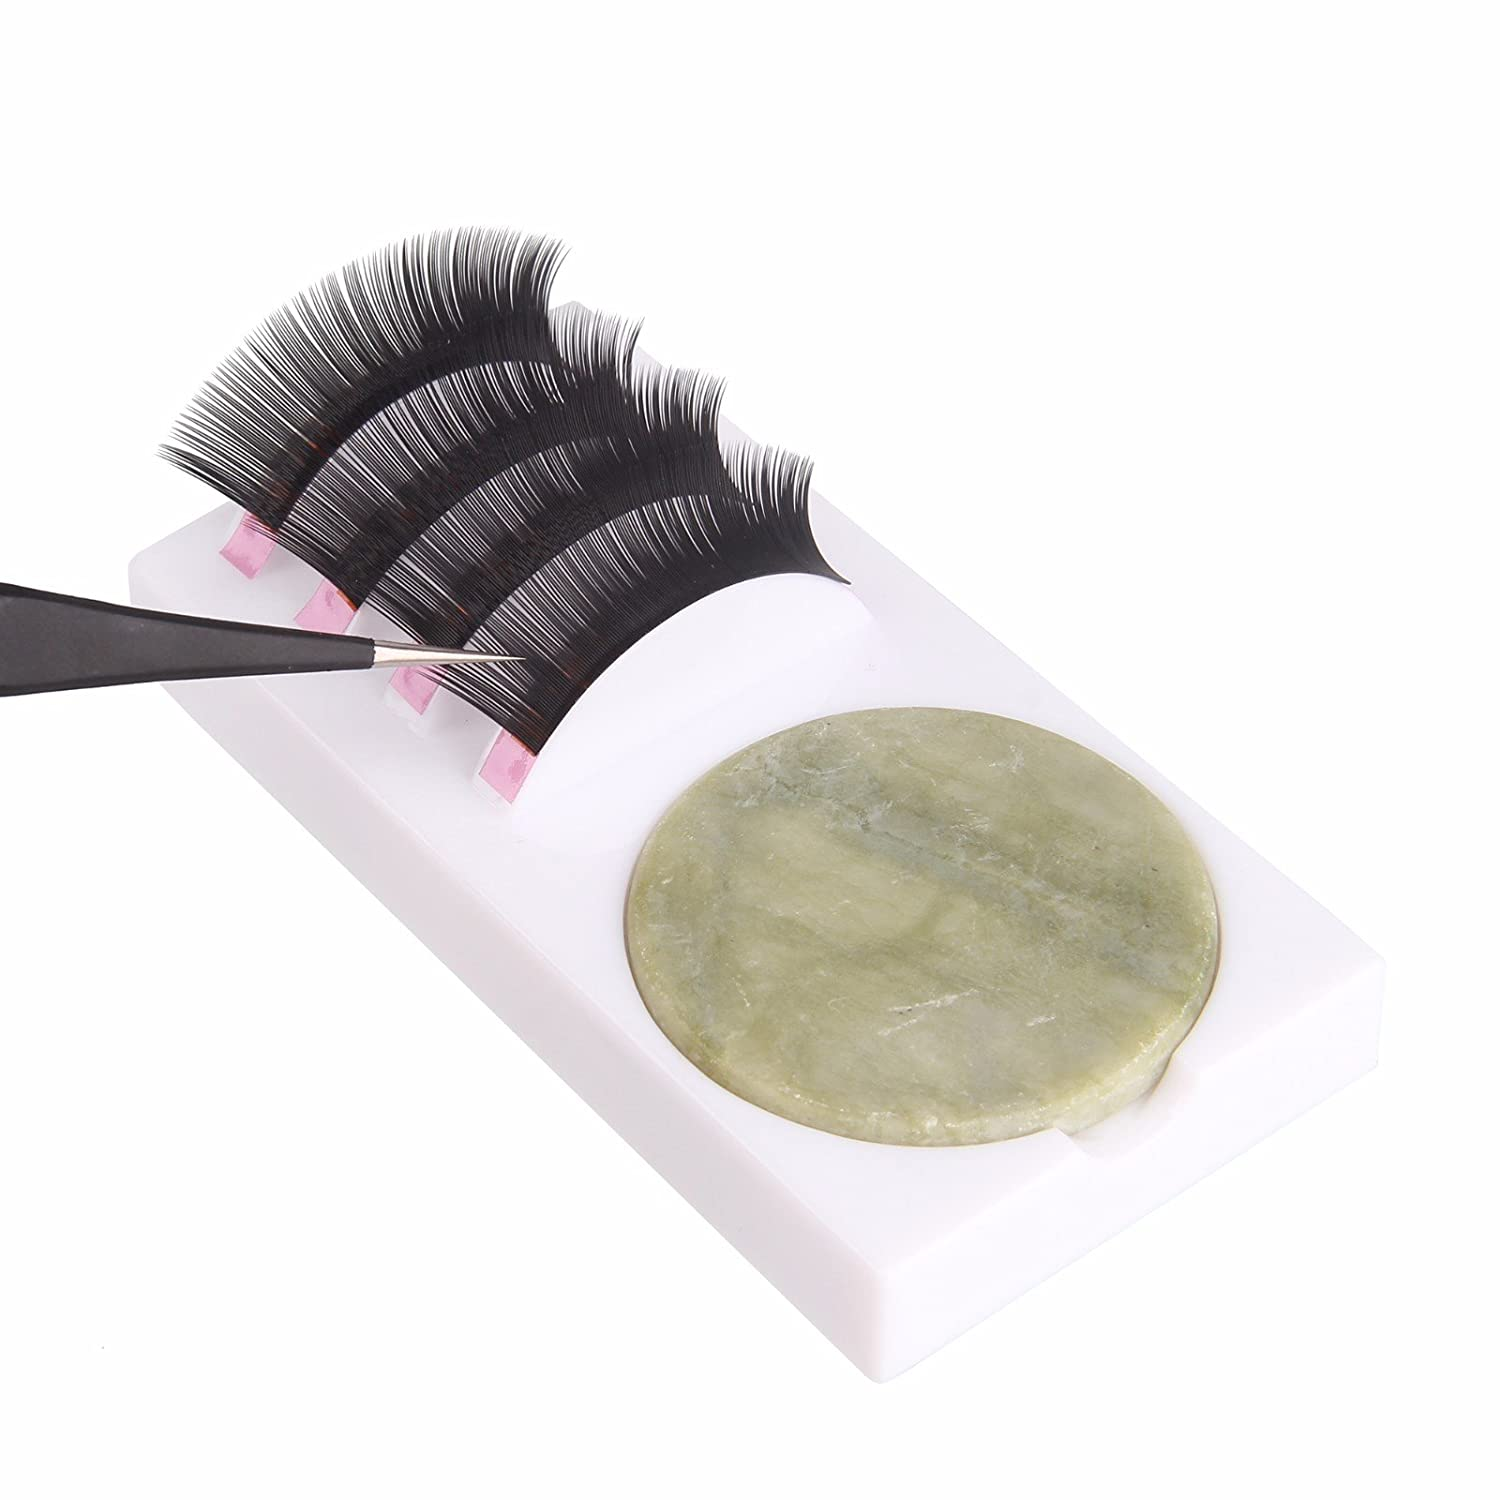 Beauty7 U Curved New color 2-in-1 Eyelash Base Extension Popular brand Stand Holder With